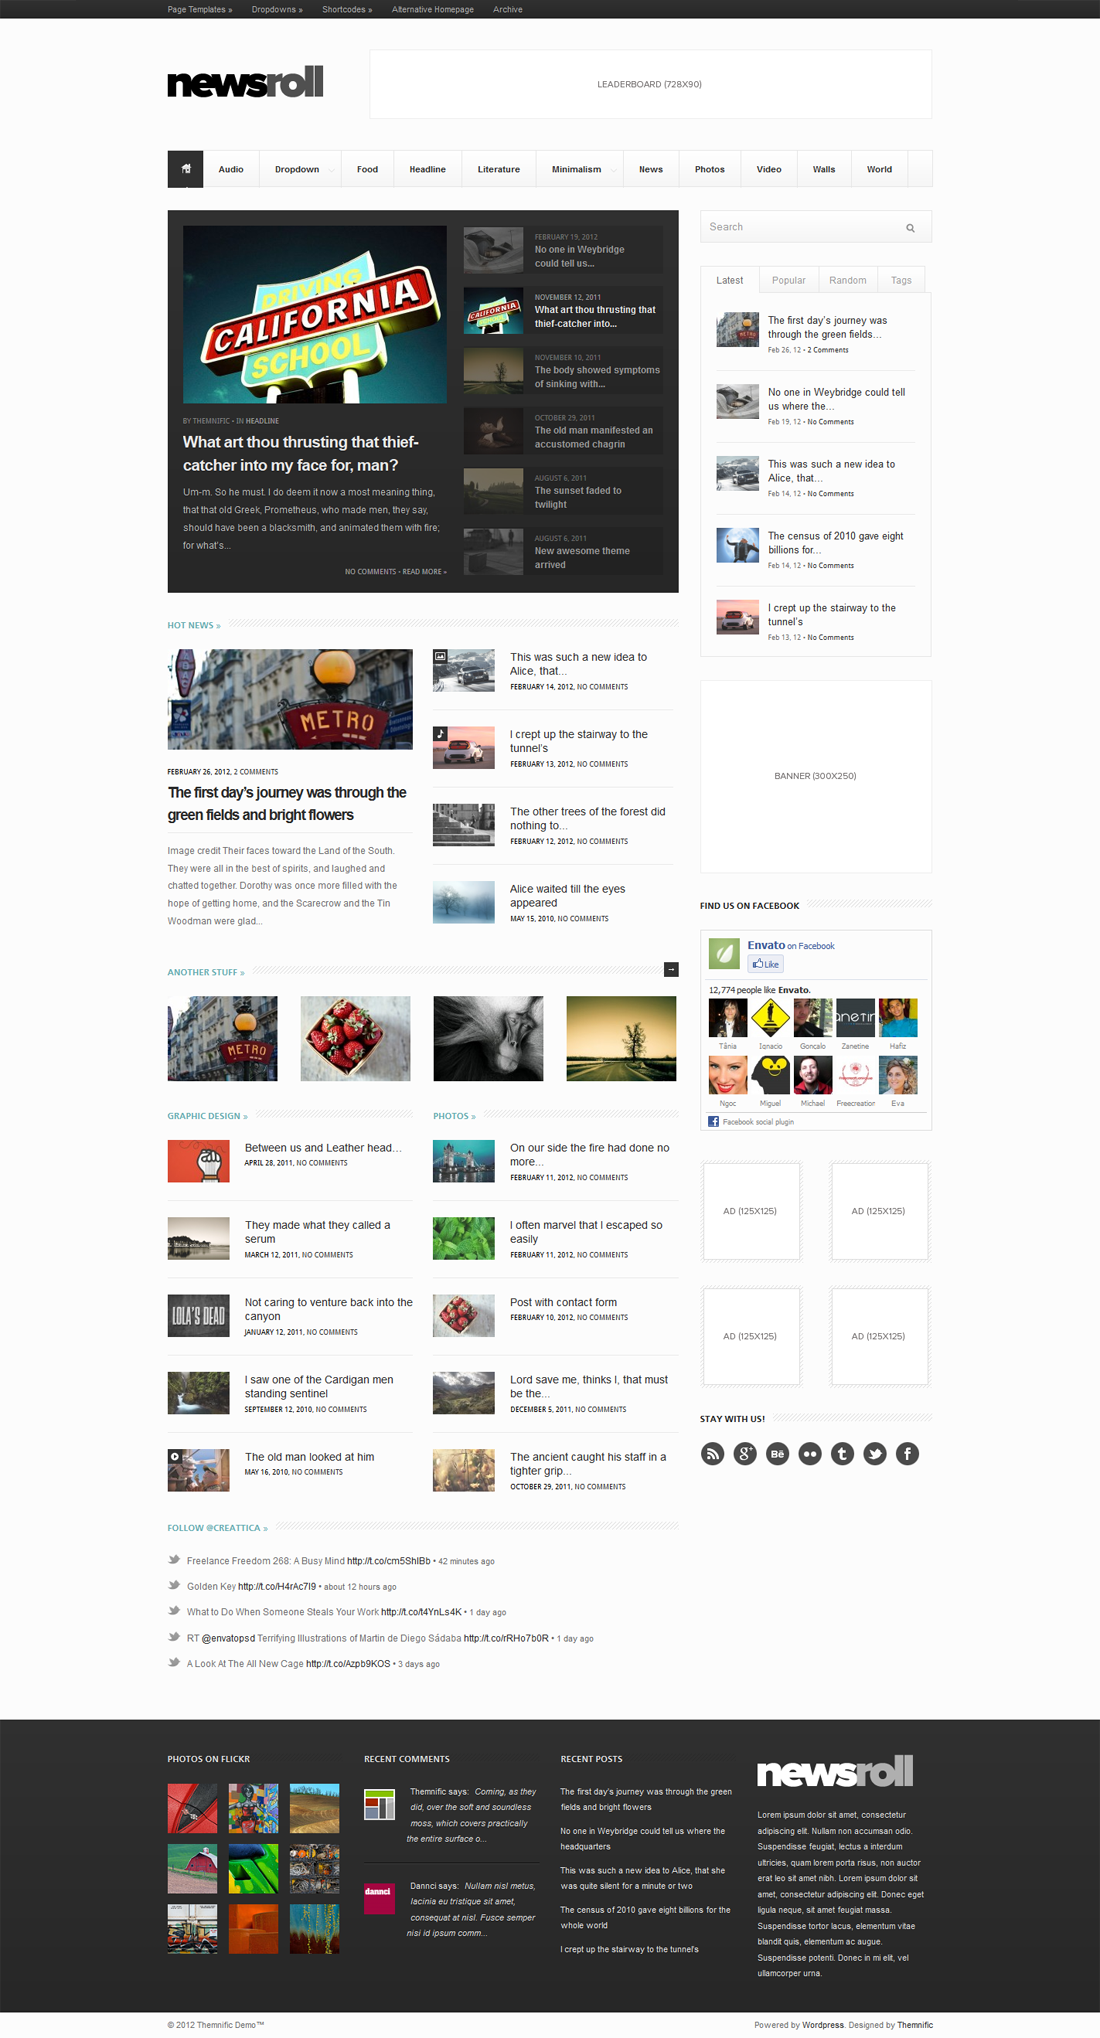 http://3.s3.envato.com/files/31283732/screens/02-homepage.png